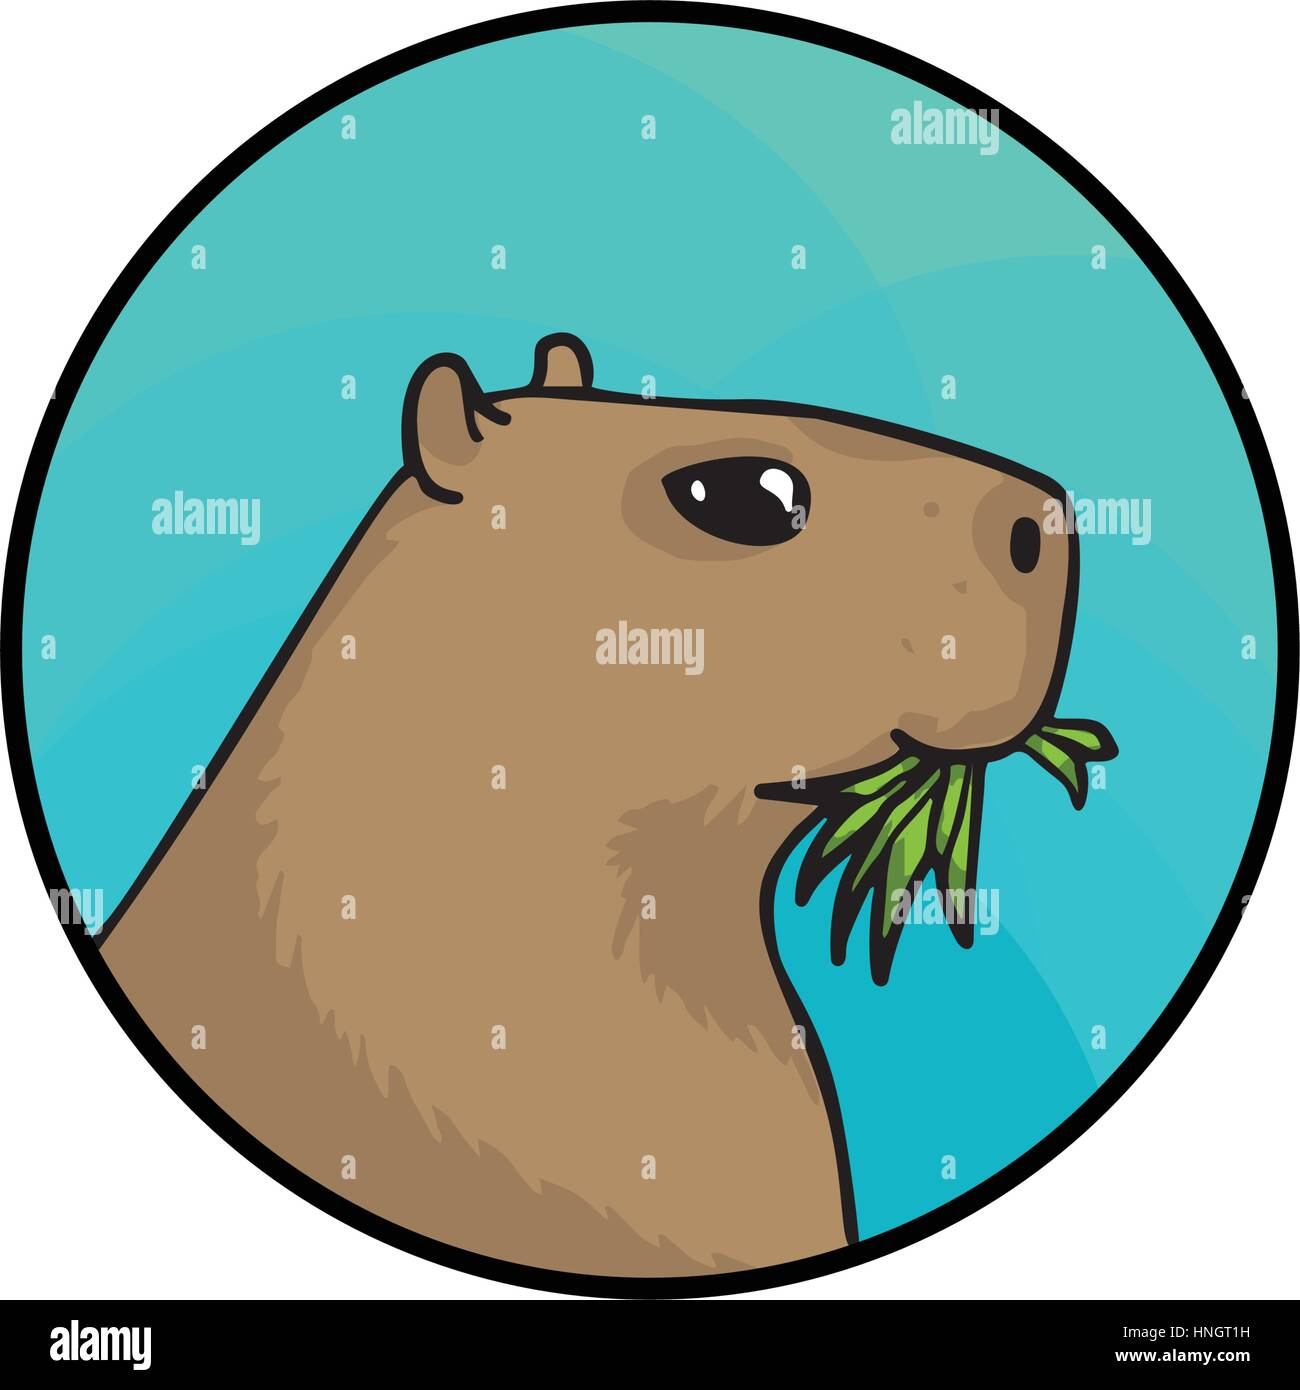 Illustration Capybara Imágenes De Stock & Illustration Capybara ...